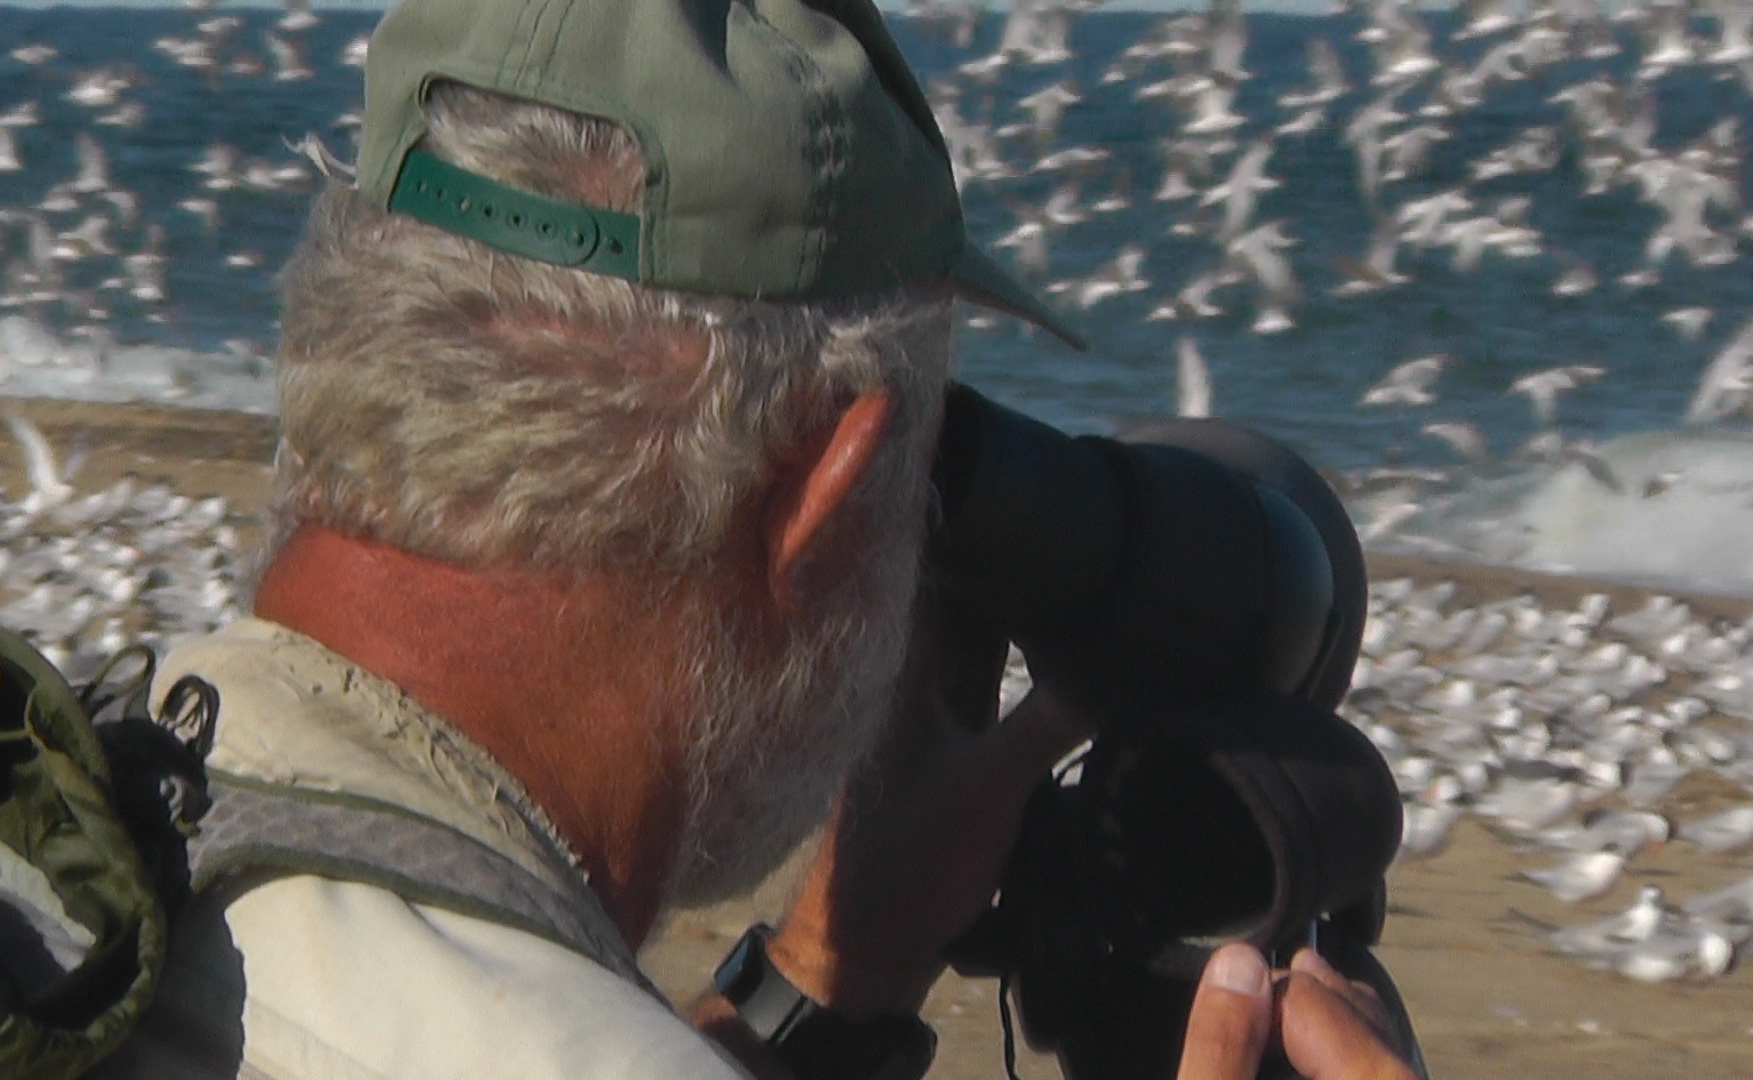 A man looks through a scope at birds on a beach.